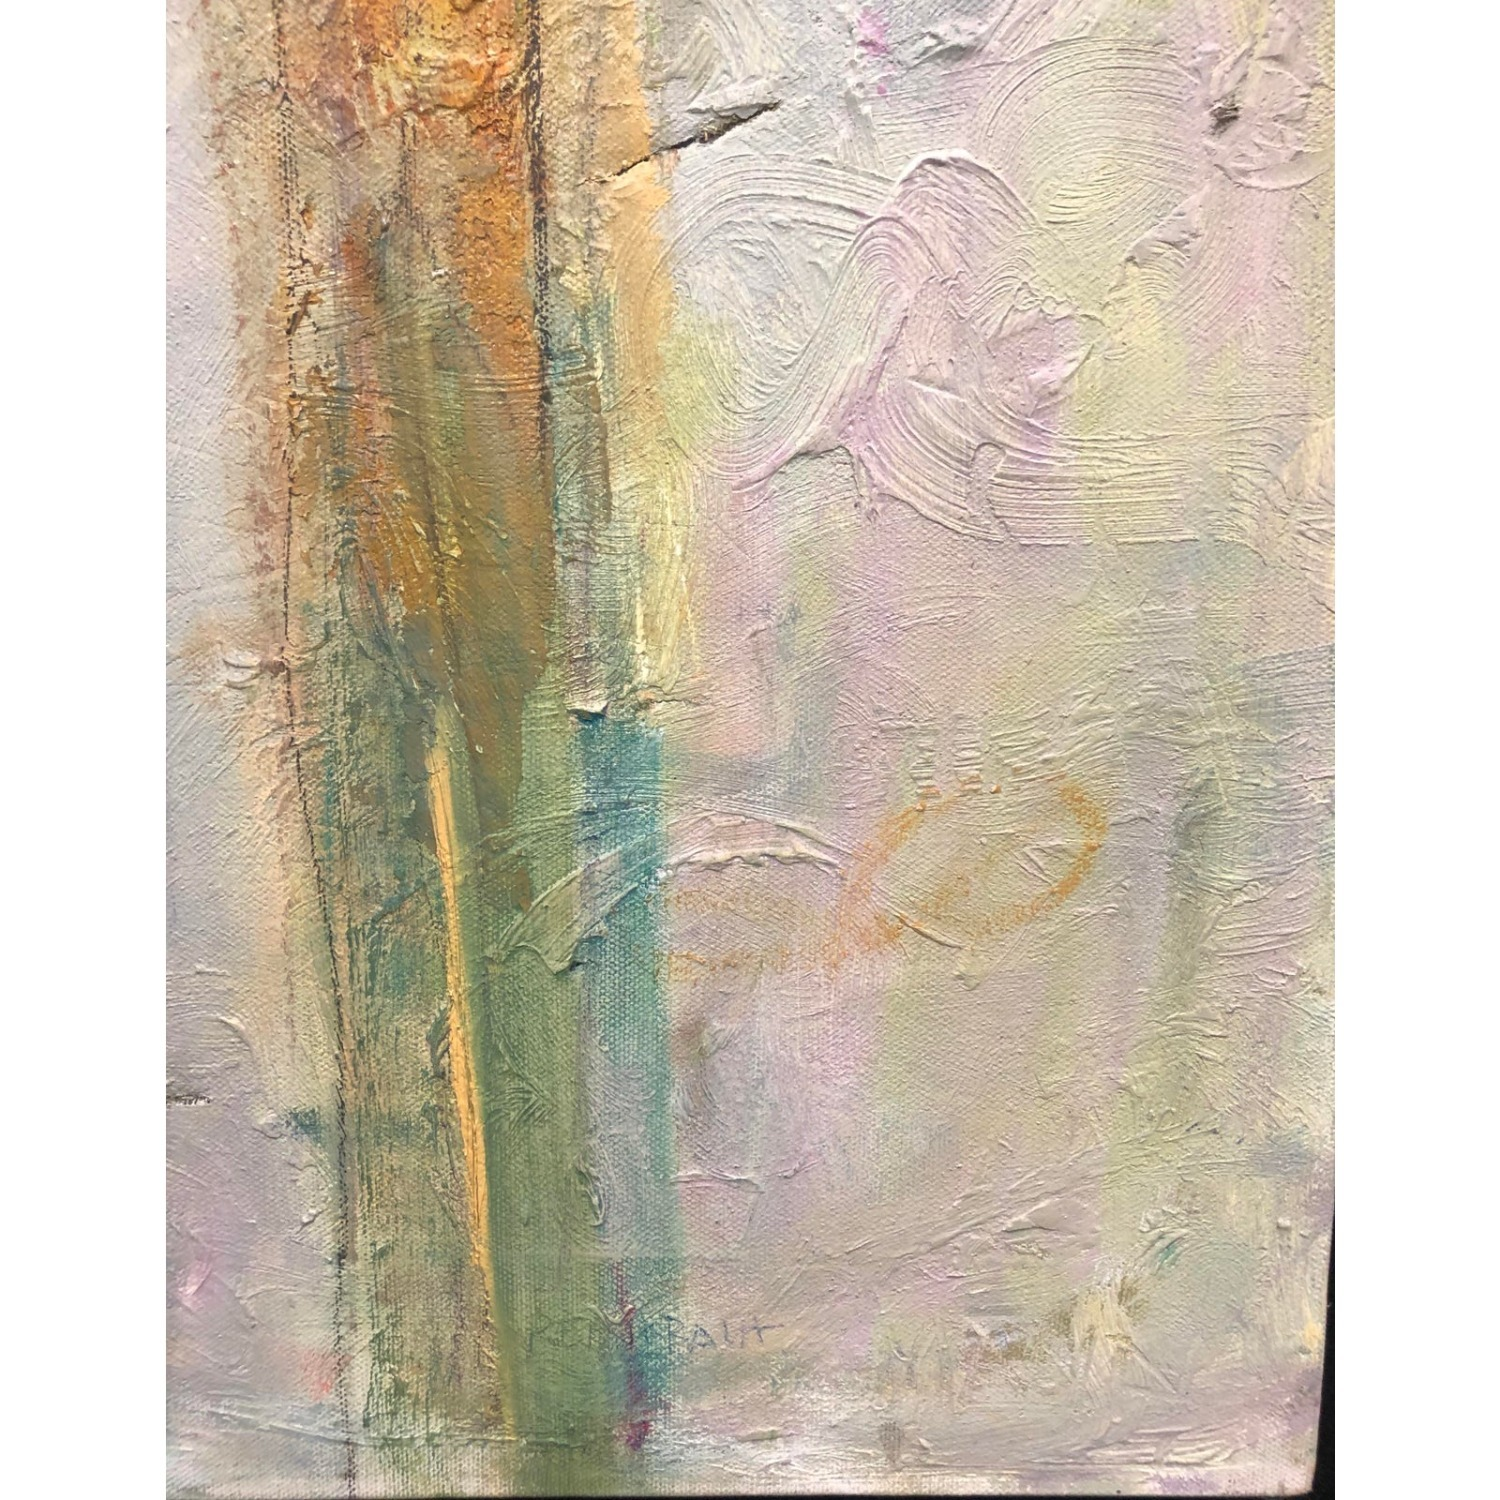 Upward Original Abstract Expressionist Painting - image-3